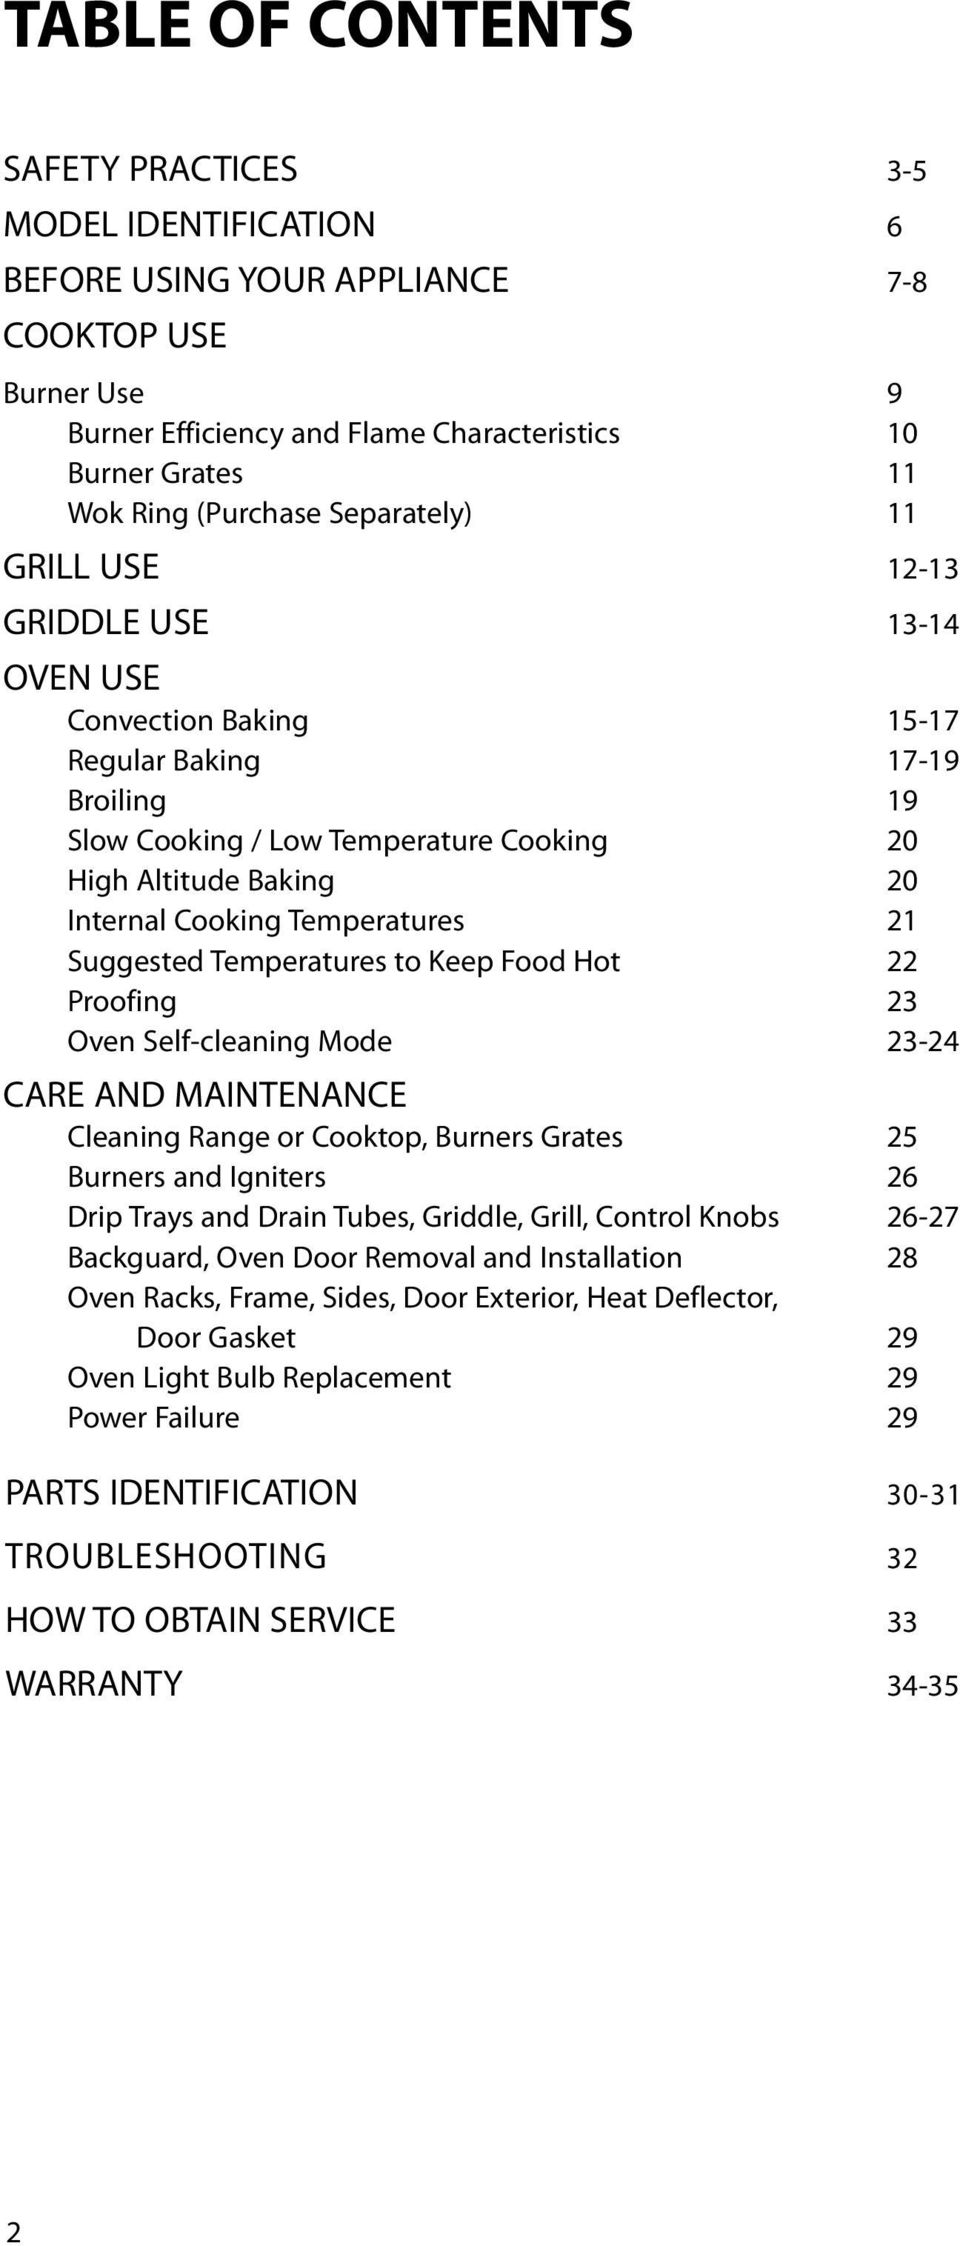 Cooking Temperatures 21 Suggested Temperatures to Keep Food Hot 22 Proofing 23 Oven Self-cleaning Mode 23-24 CARE AND MAINTENANCE Cleaning Range or Cooktop, Burners Grates 25 Burners and Igniters 26